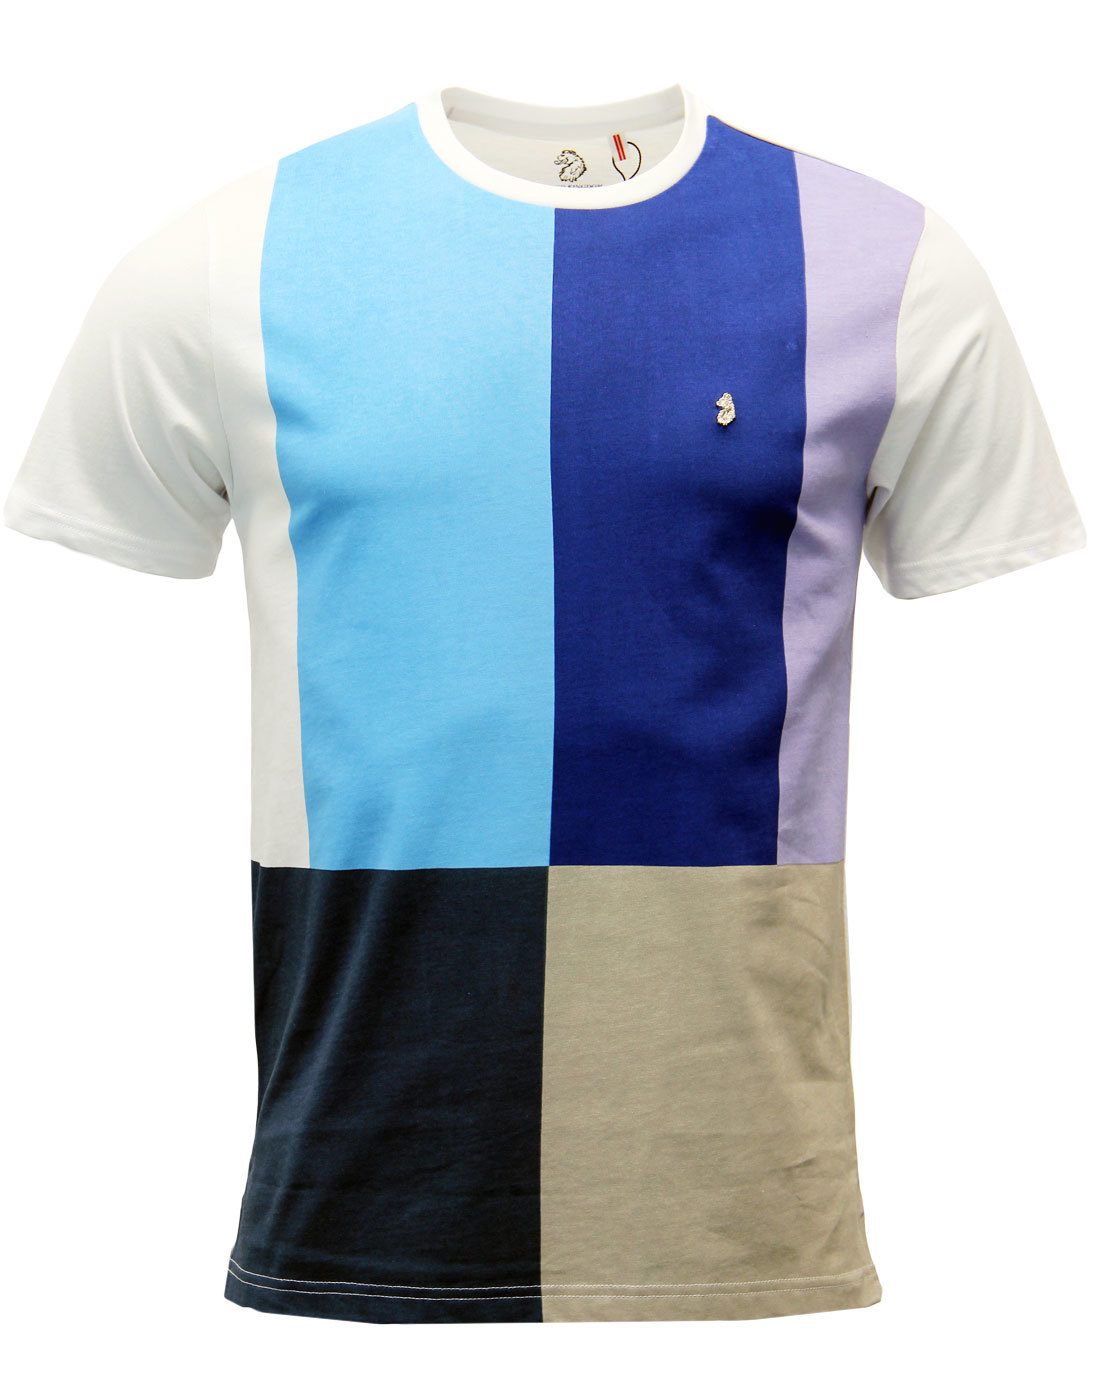 Bambi LUKE 1977 Retro Mondrian Colour Block Tee